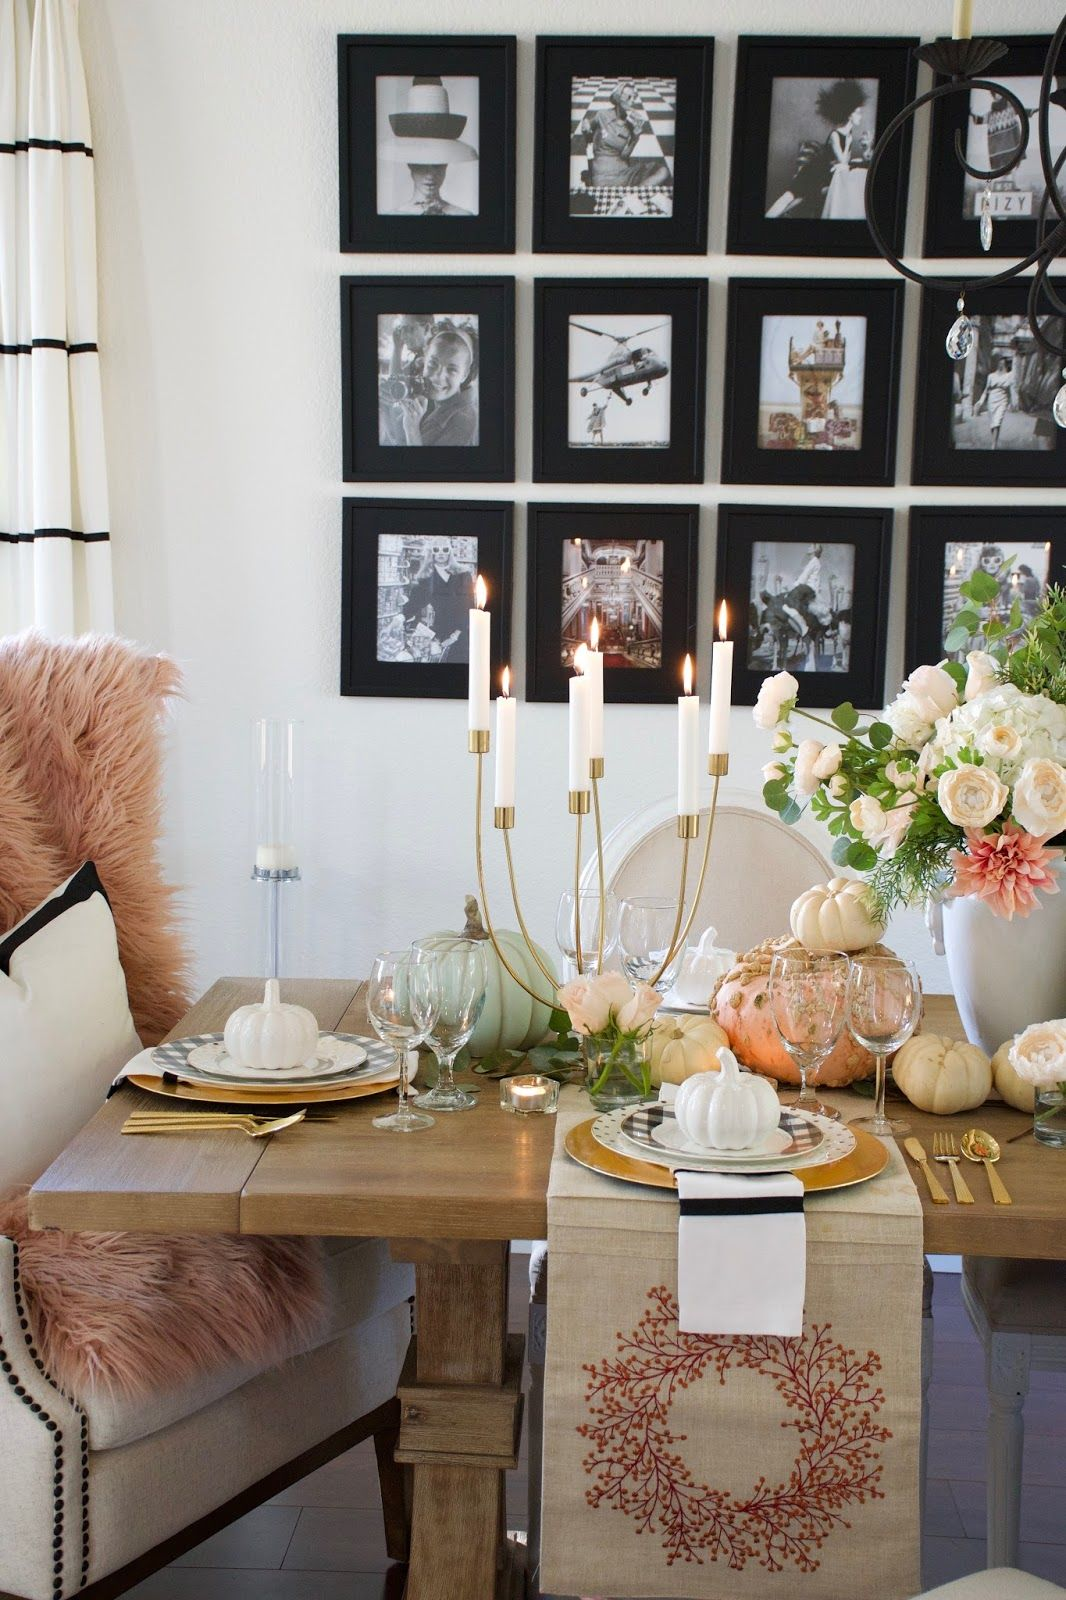 GLAMOROUS THANKSGIVING DINNER TABLE #thanksgivingdinnertable